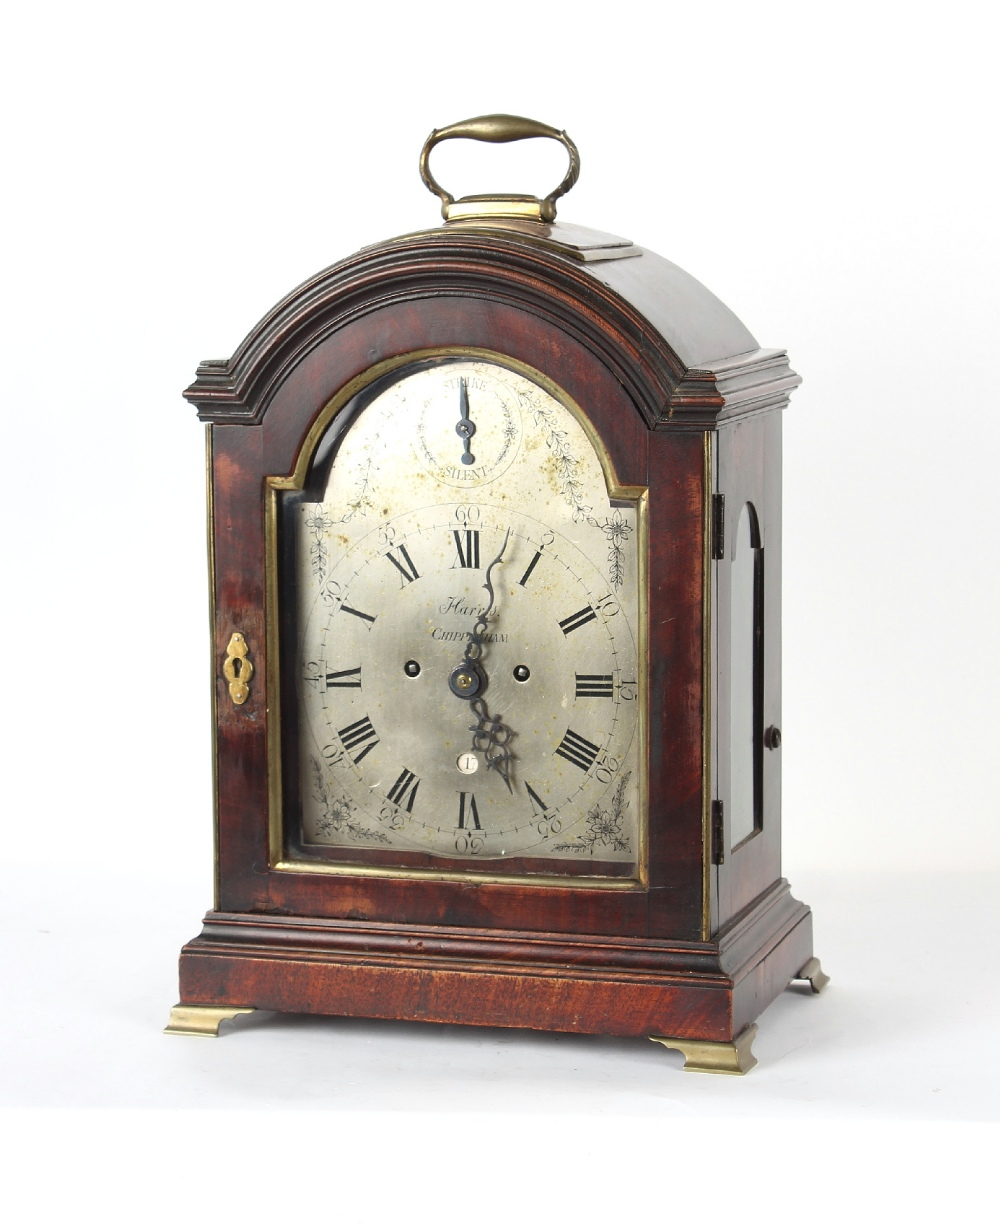 The Henry & Tricia Byrom Collection - William Harris, Chippenham, a mahogany table clock, circa - Image 2 of 3